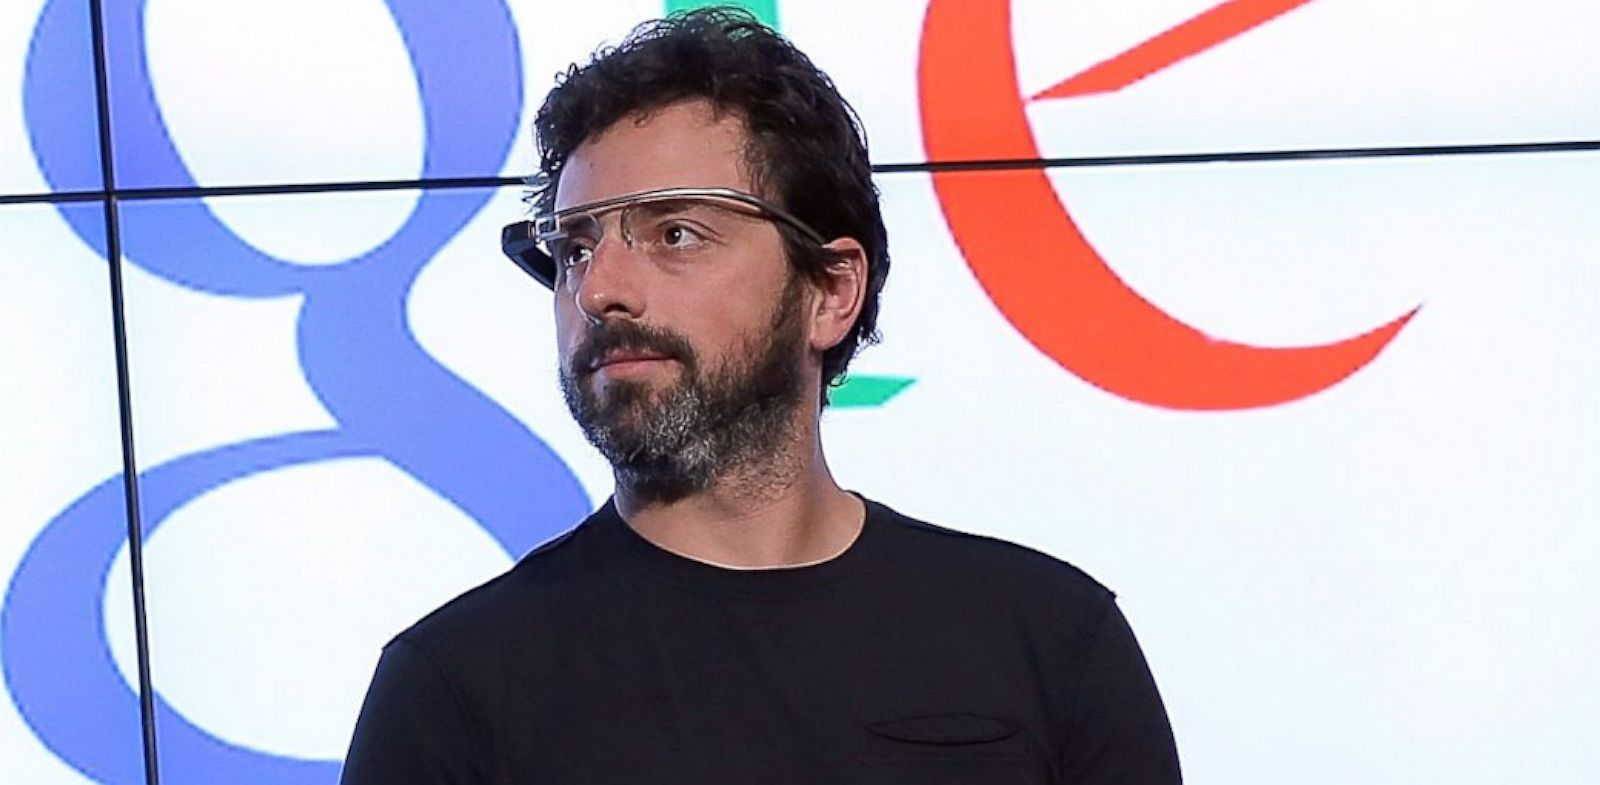 PHOTO: Google co-founder Sergey Brin